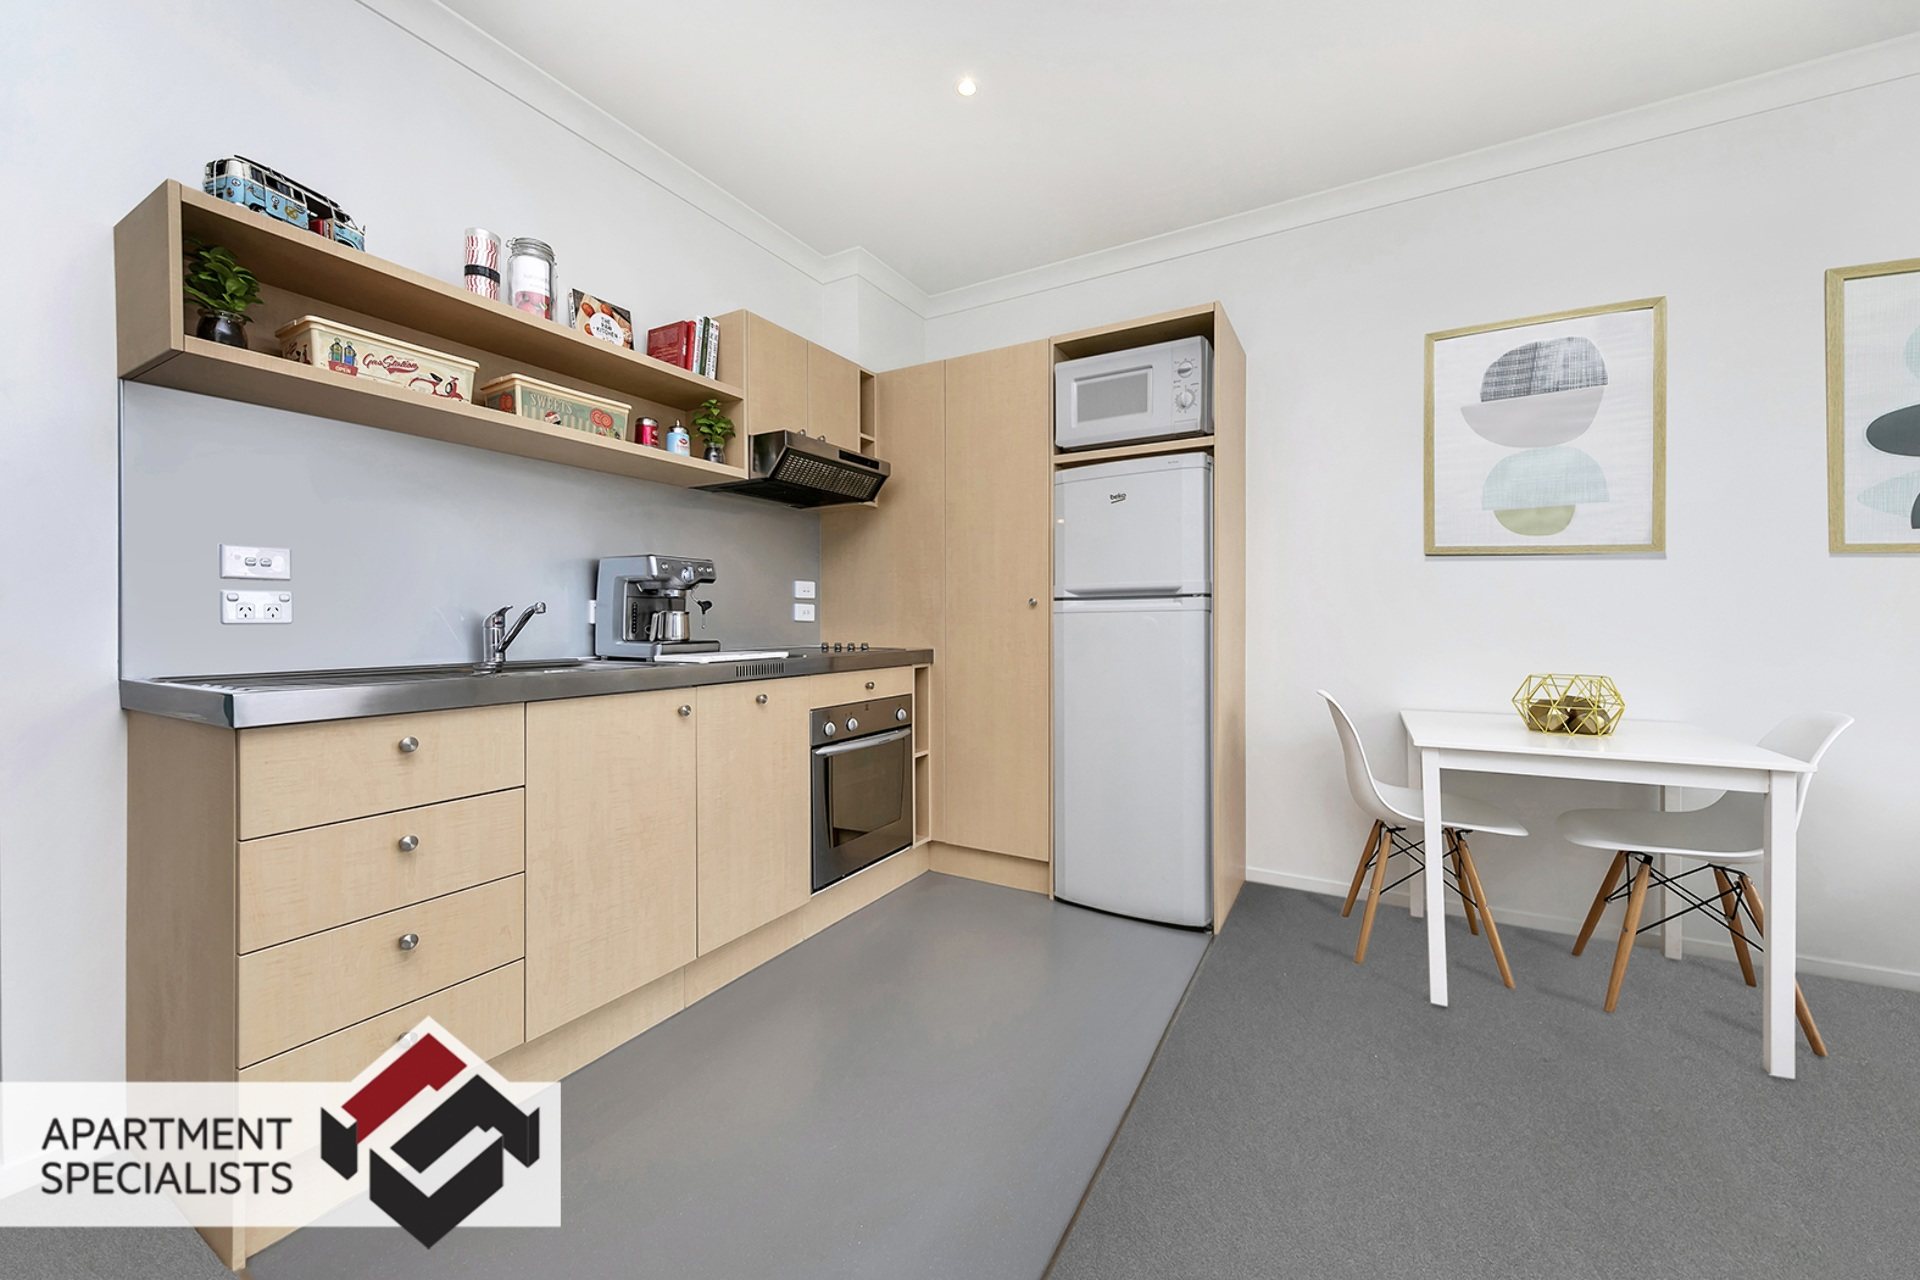 3 | 149 Nelson Street, City Centre | Apartment Specialists